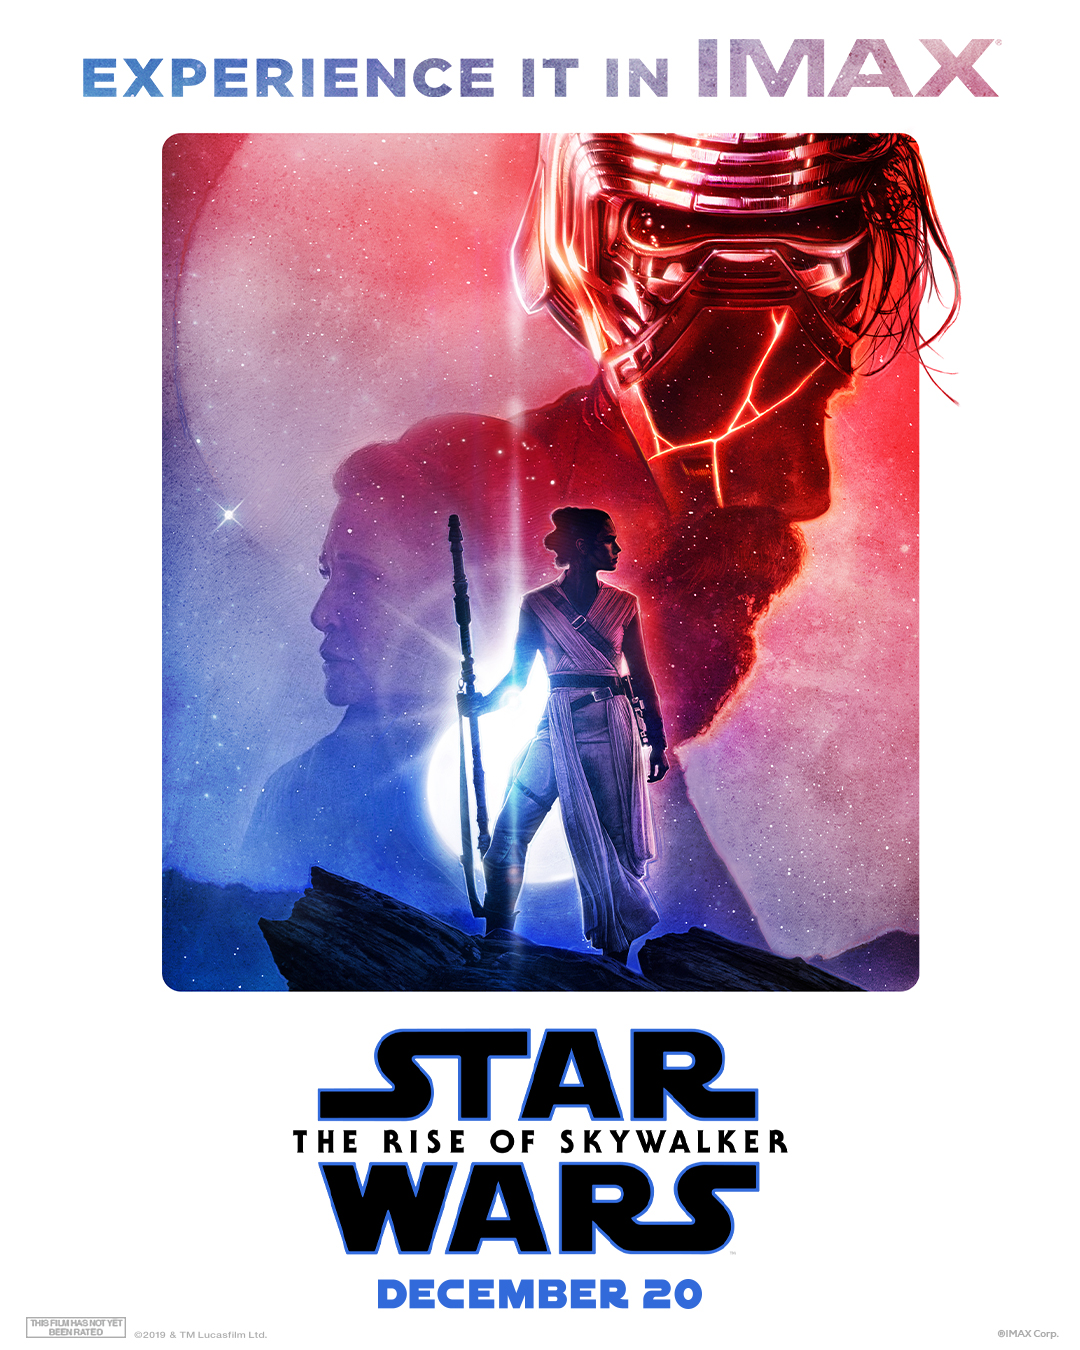 Star Wars Der Aufstieg Skywalkers internationaler Trailer & Poster